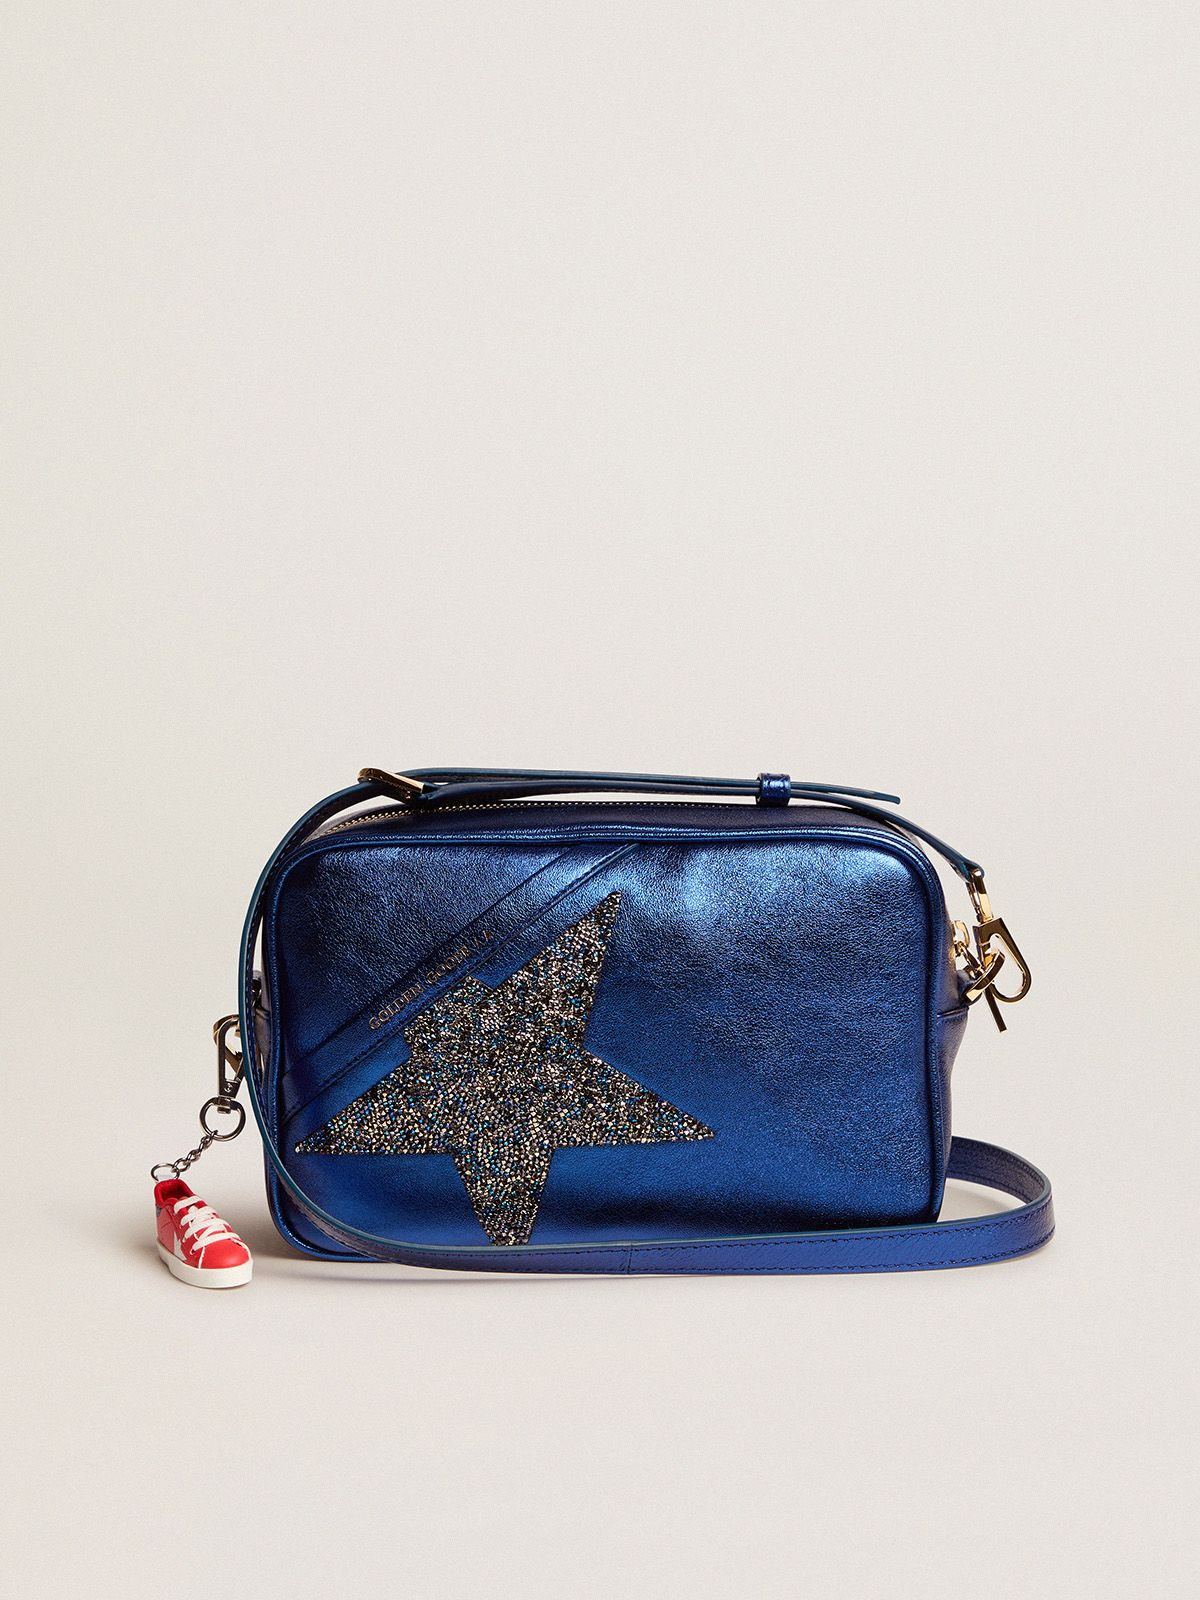 Star Bag made of blue laminated leather with Swarovski star